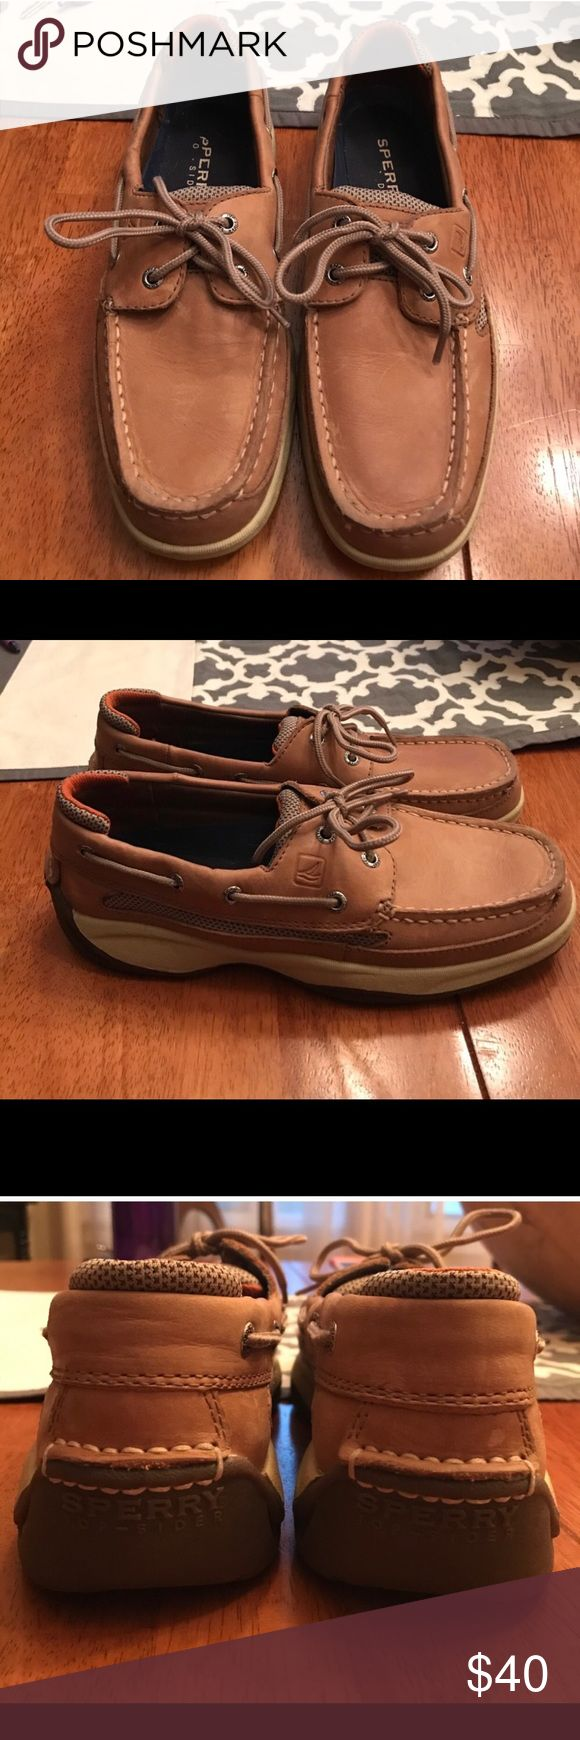 Sperry men's shoes Sperry top siders men's 7.5  worn only a few times. Excellent condition Sperry Top-Sider Shoes Loafers & Slip-Ons